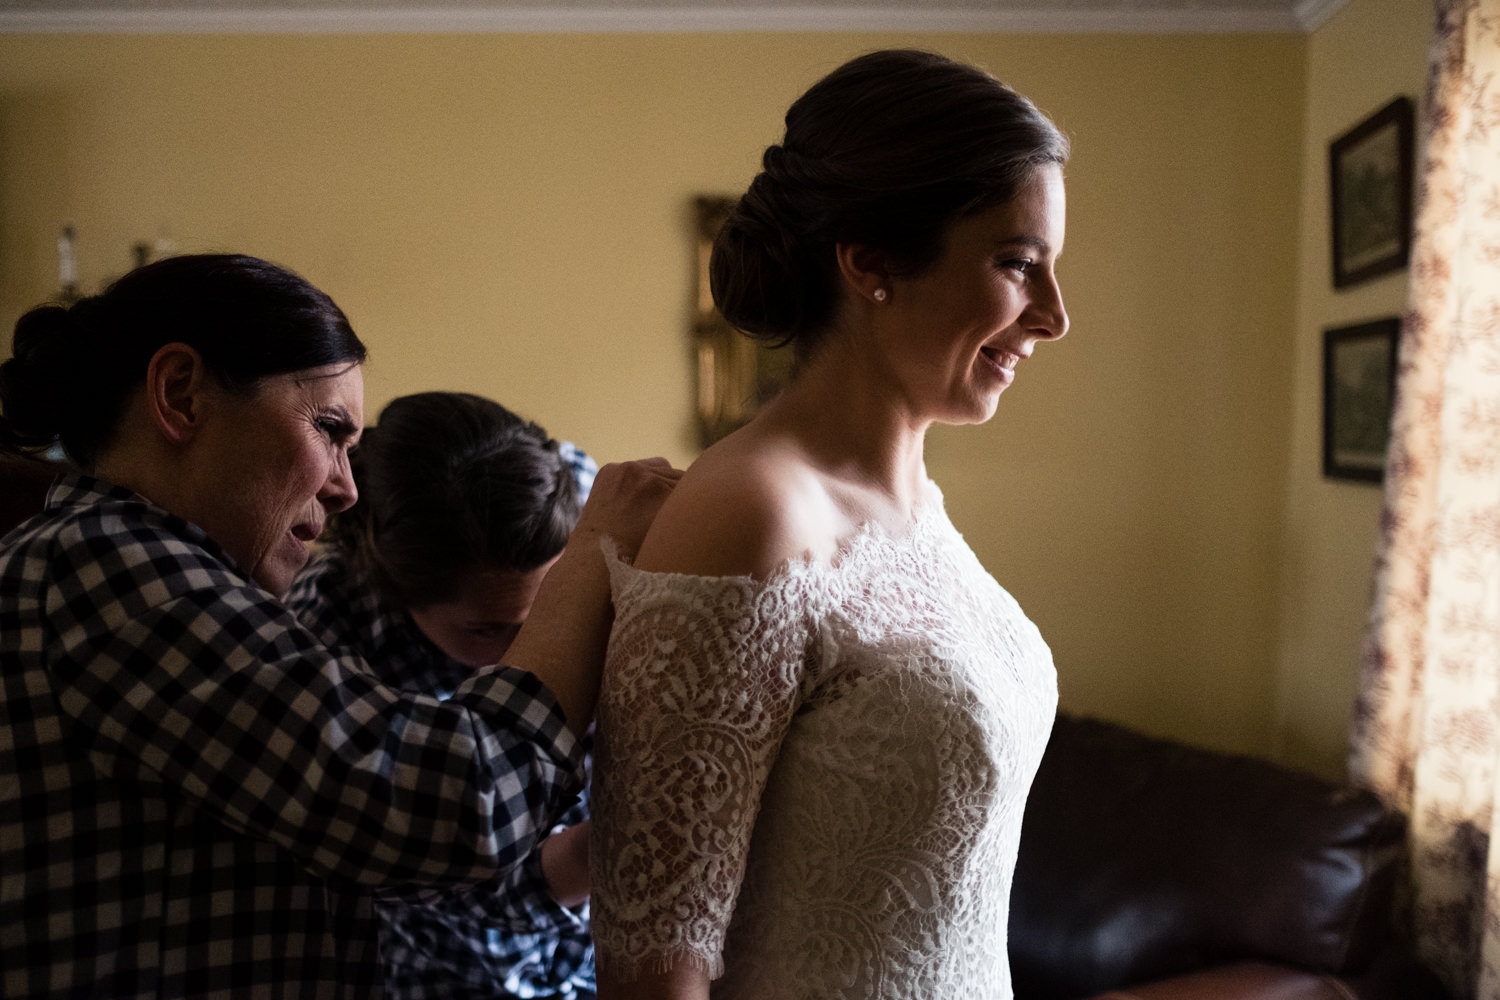 Kate_Phil_Currier_Museum_Wedding_New Hampshire-8.jpg